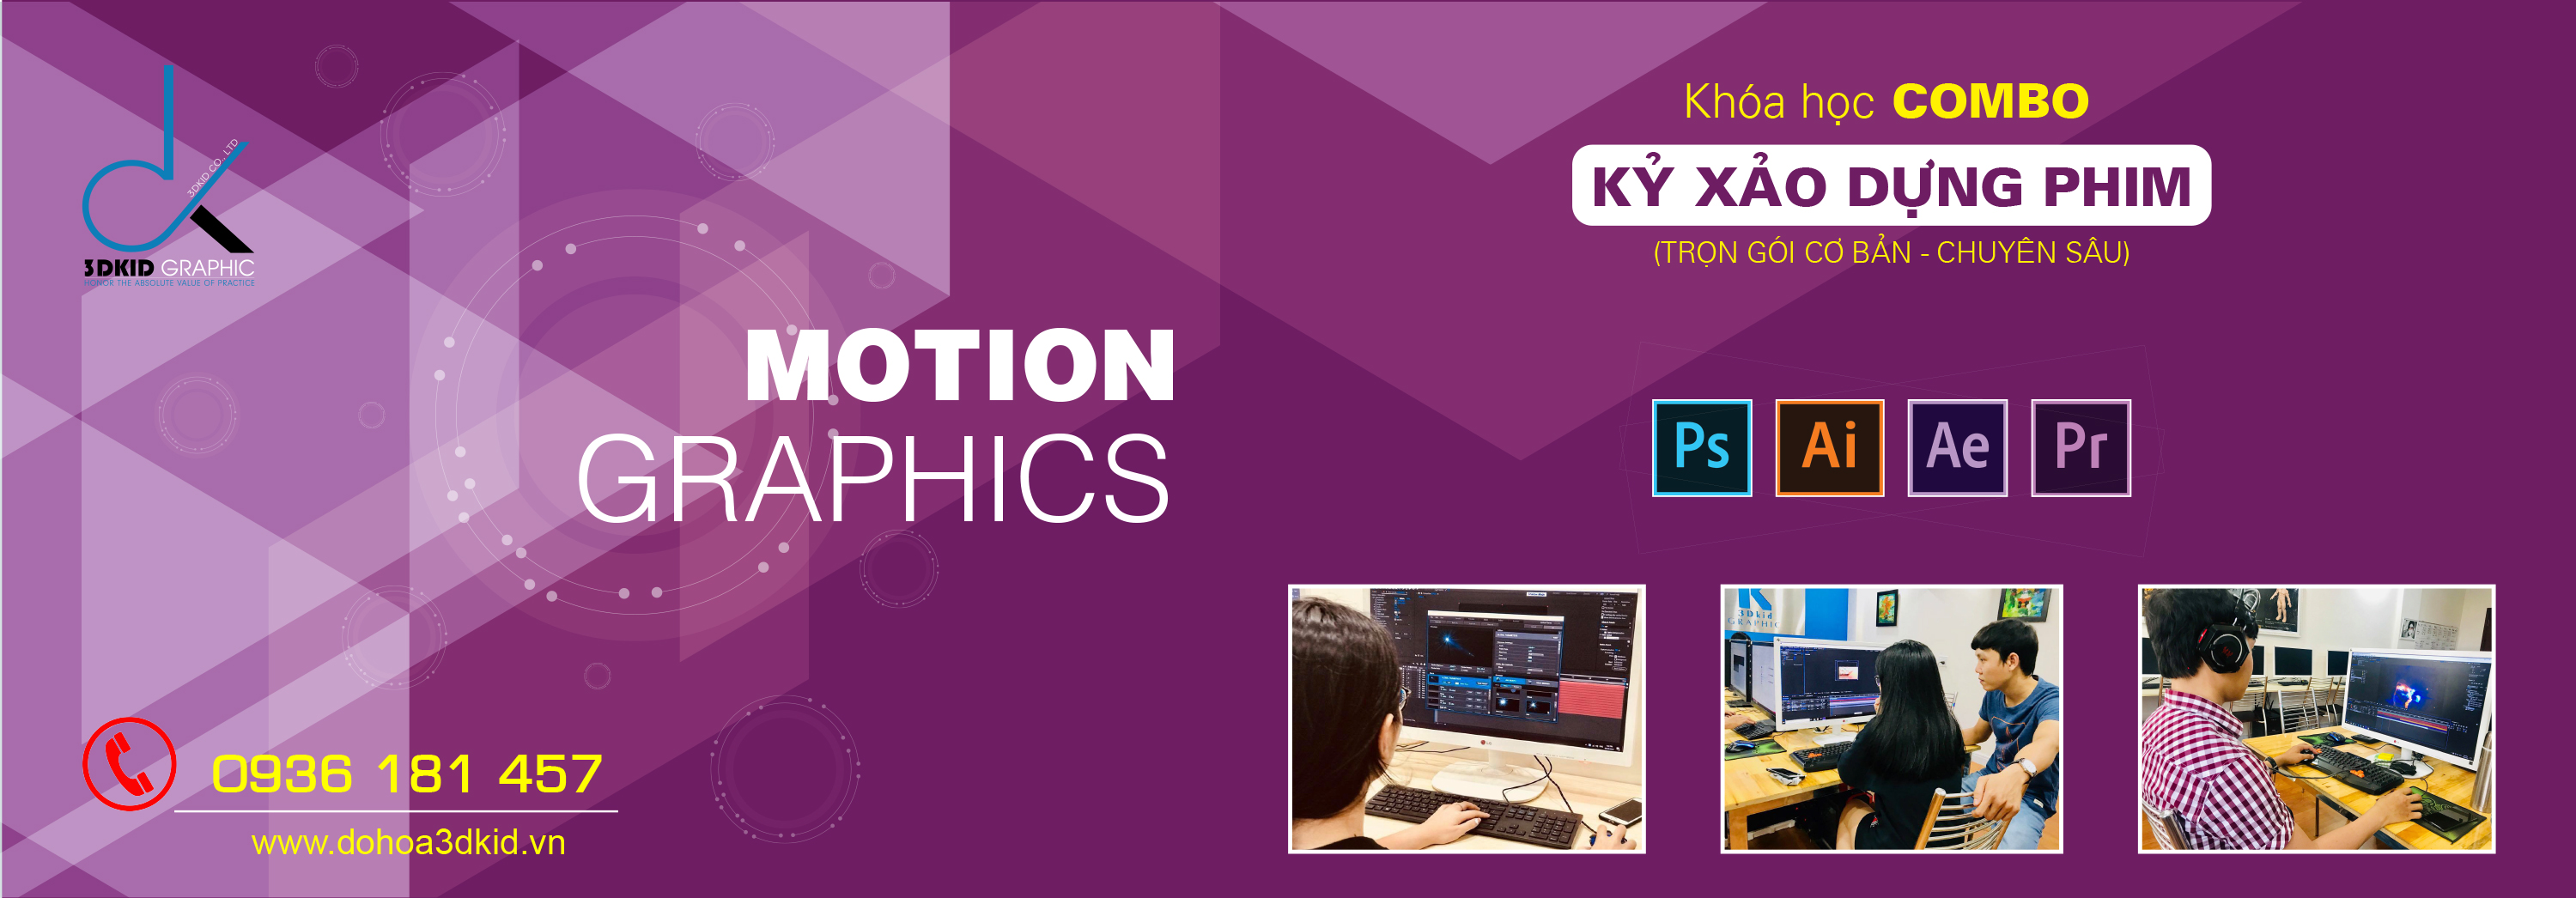 motion-graphic-ky-xao-dung-phim-do-hoa-3dkid